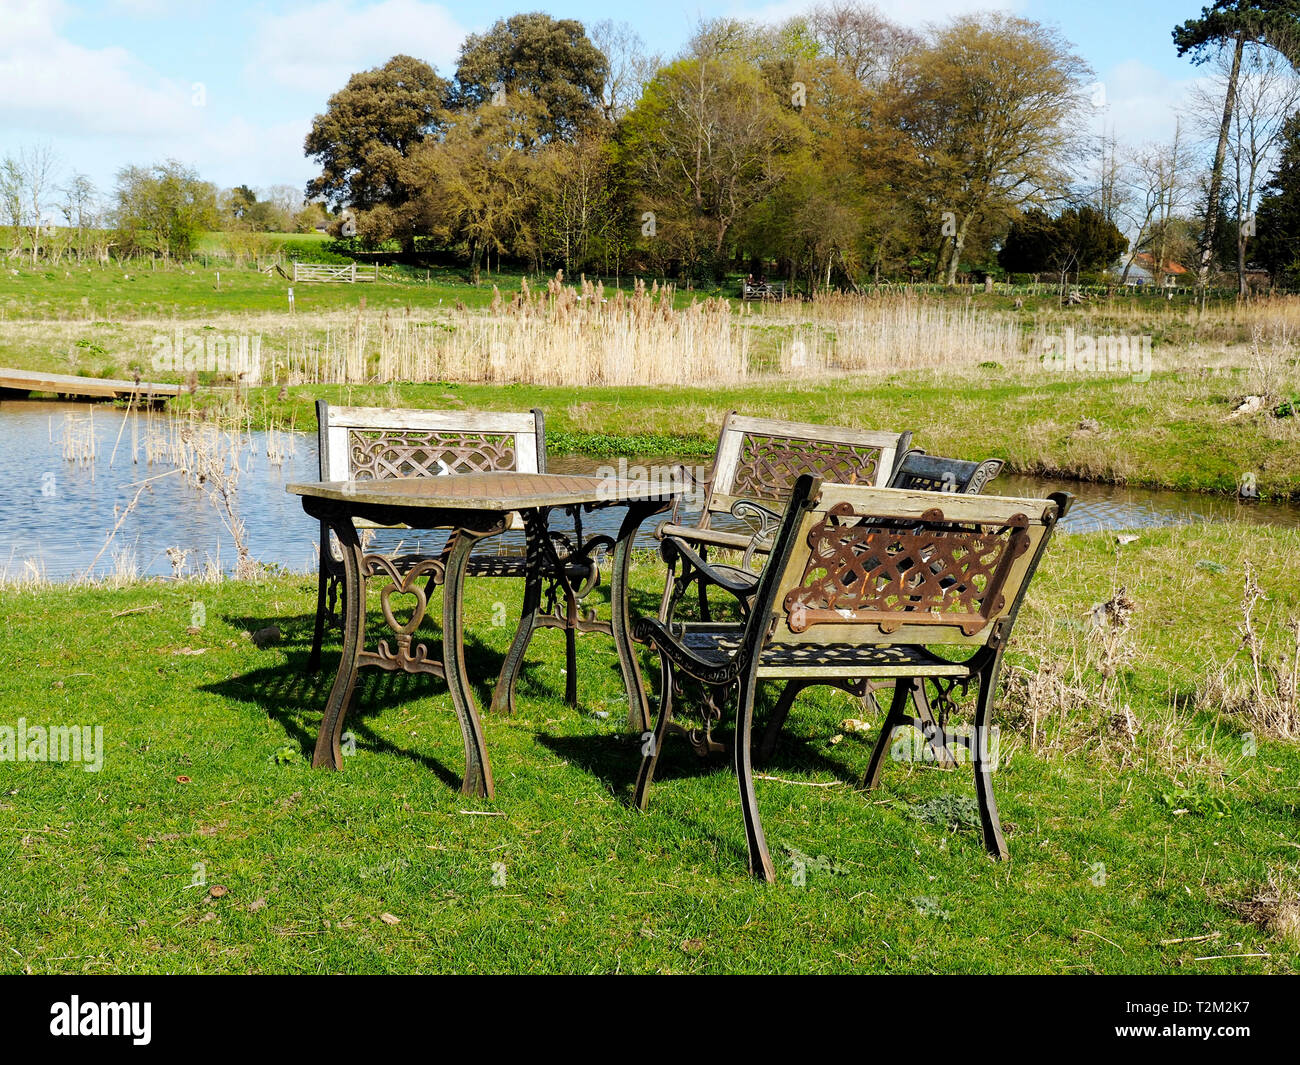 Heavy cast iron and wood garden furniture in a slightly surreal location in the middle of an area of meadow and man-made ponds. Stock Photo